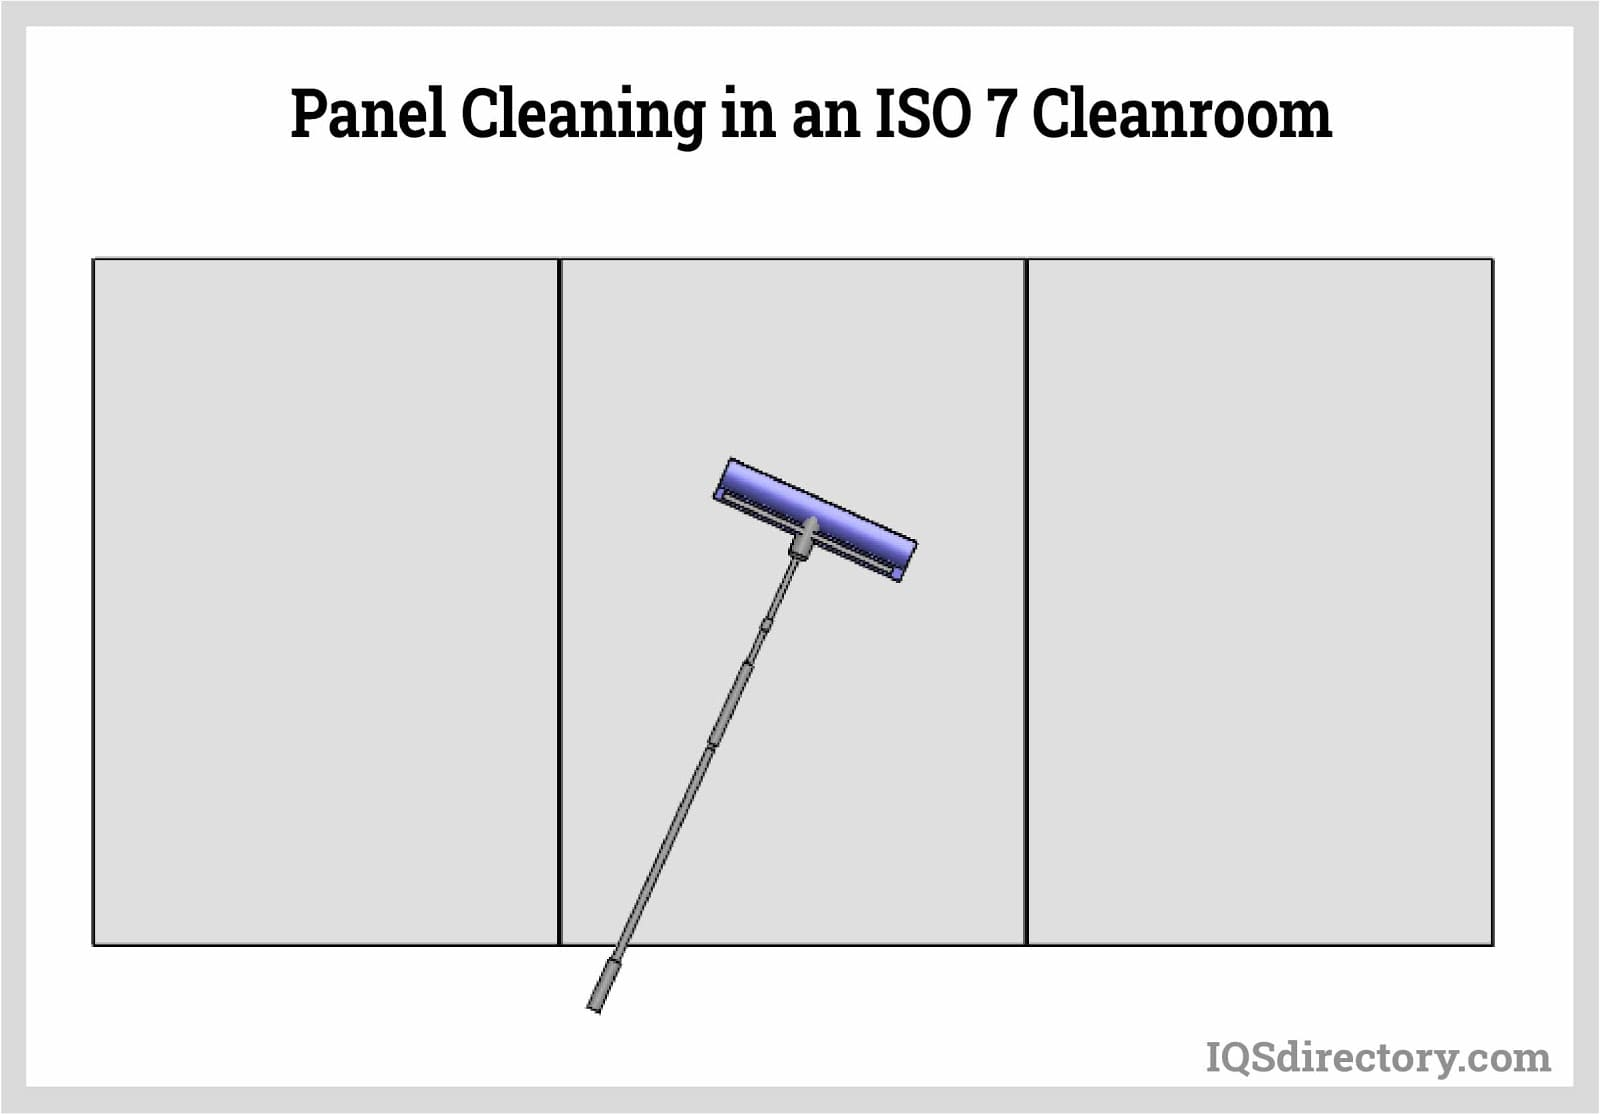 Panel Cleaning in an ISO 7 Cleanroom